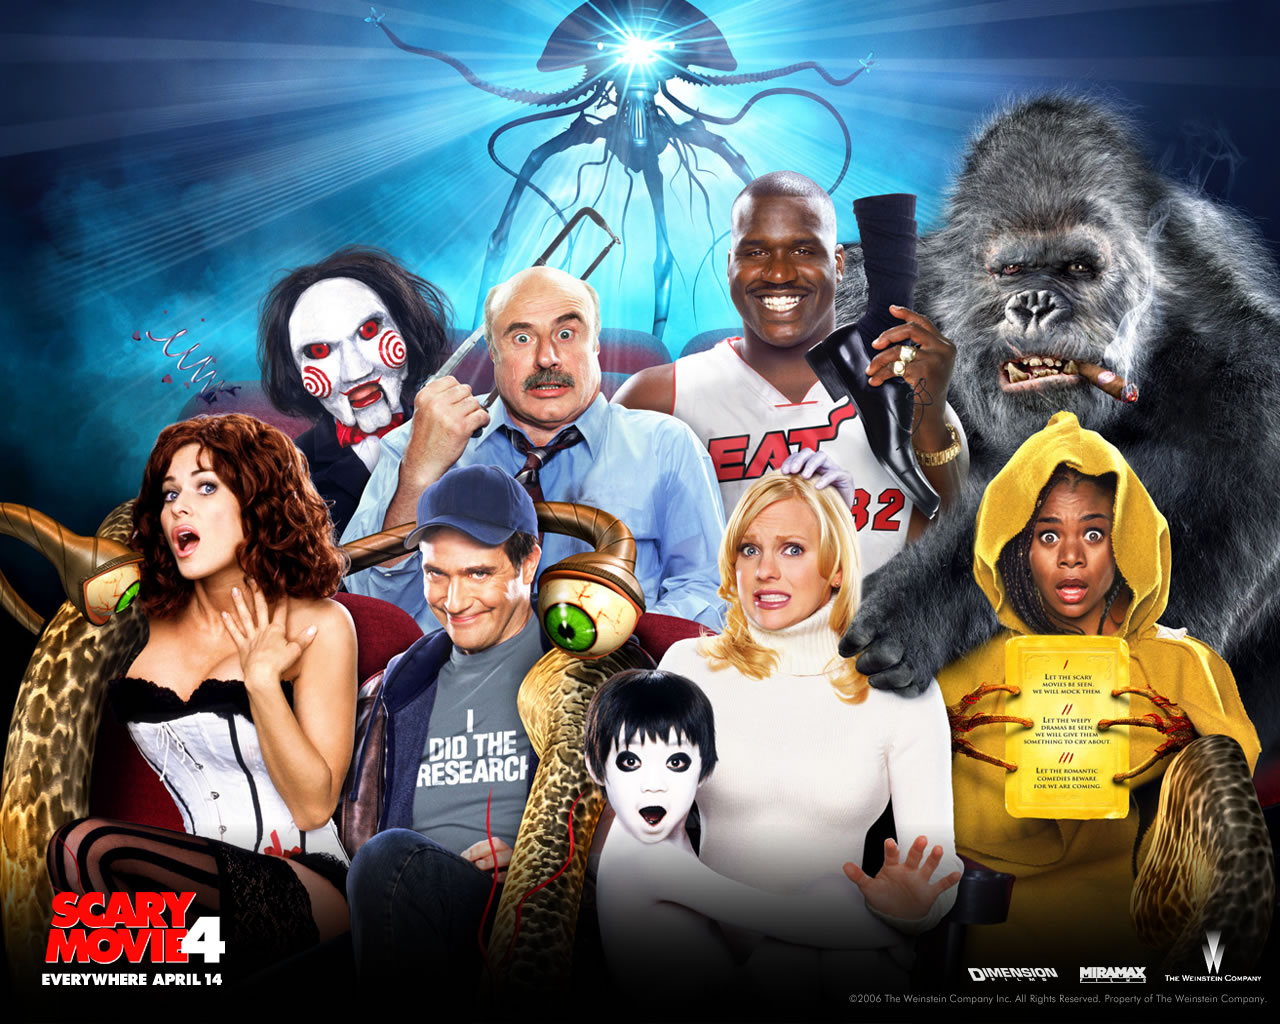 Scary movie 4 image